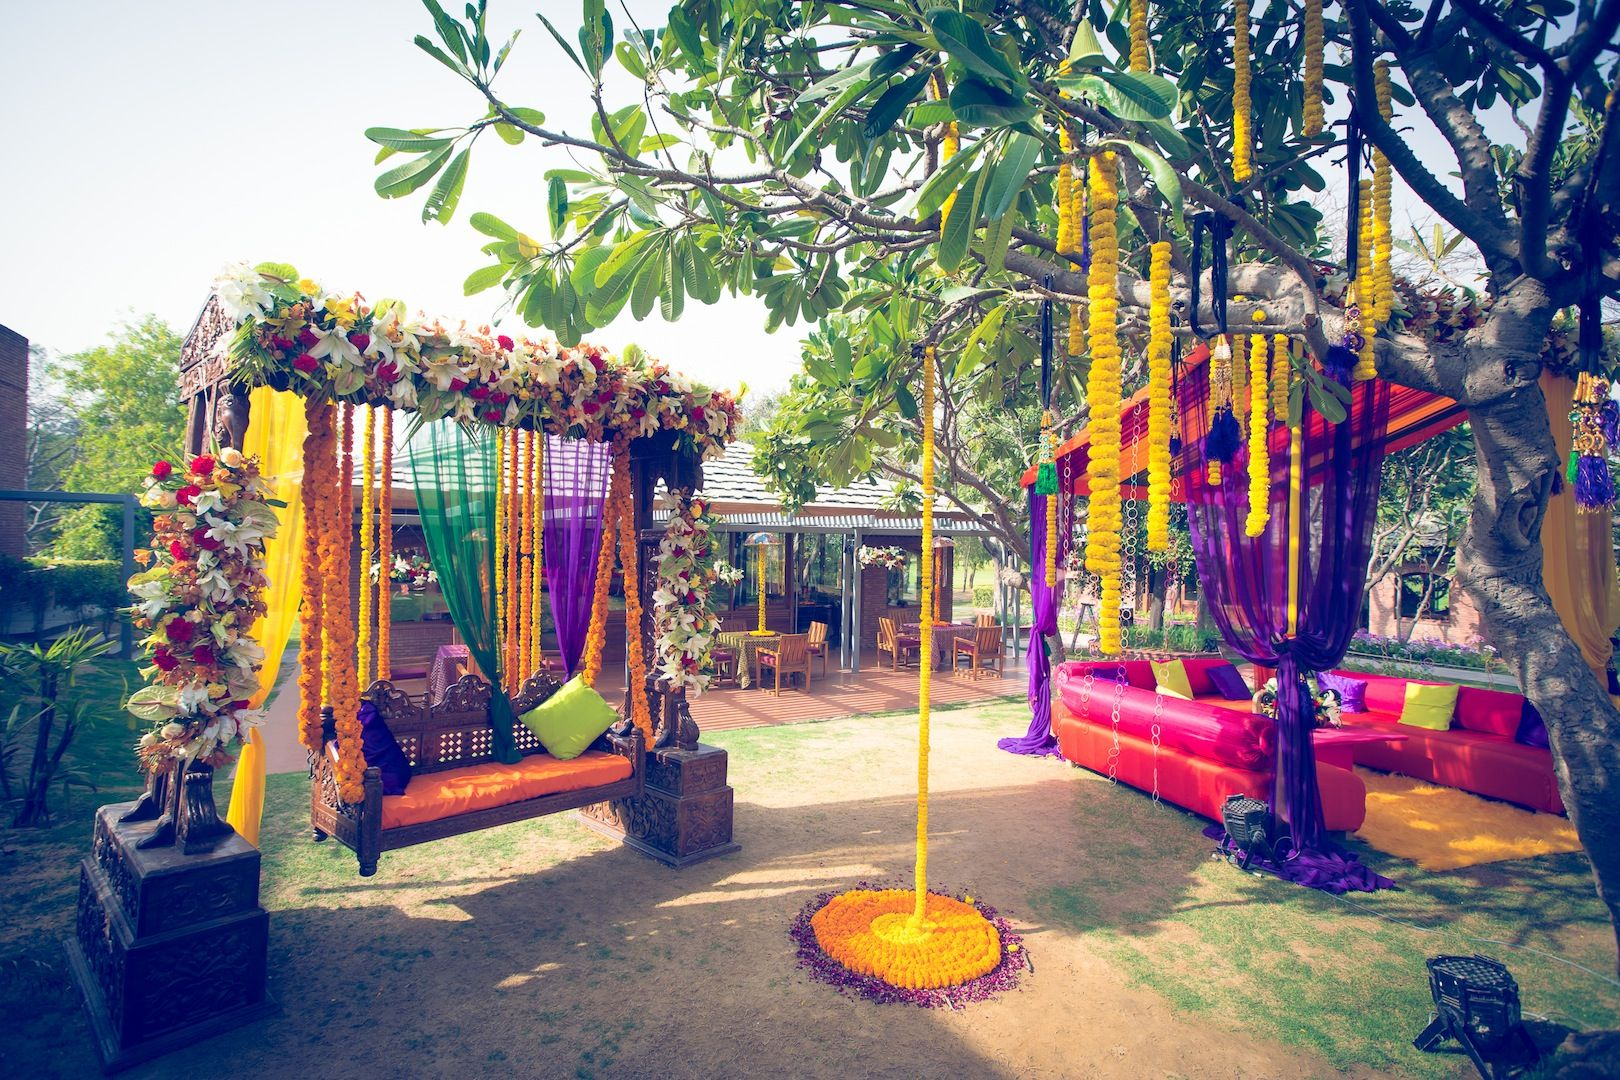 wedding stage decoration pics%0A Find this Pin and more on Wedding Decor Elegant Themes by bandbaajaplan